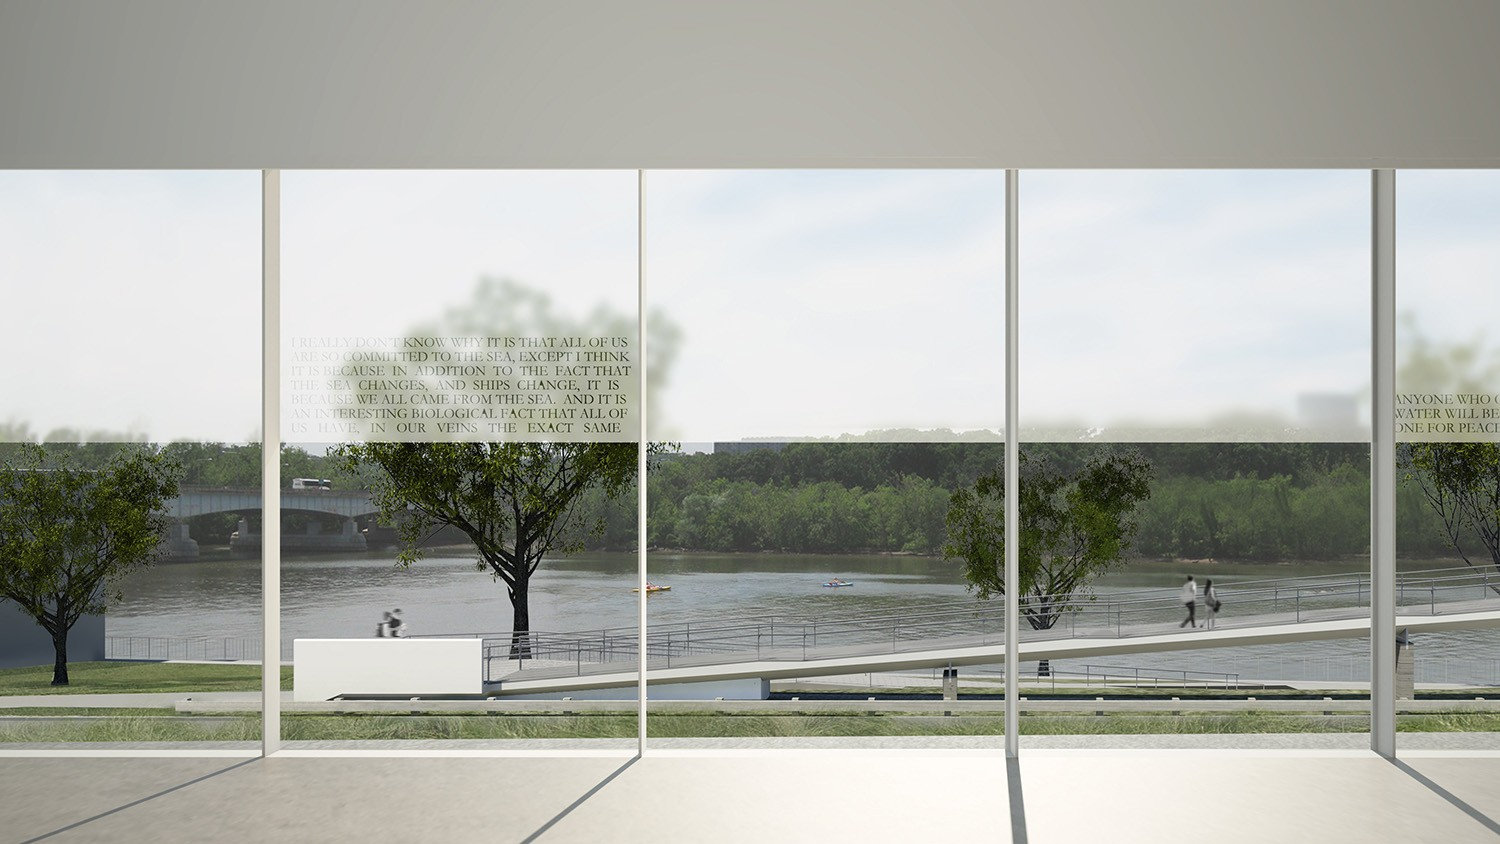 https://s3.us-east-2.amazonaws.com/steven-holl/uploads/projects/project-images/StevenHollArchitects_JFK_ViewtowardsPotomac_WH.jpg